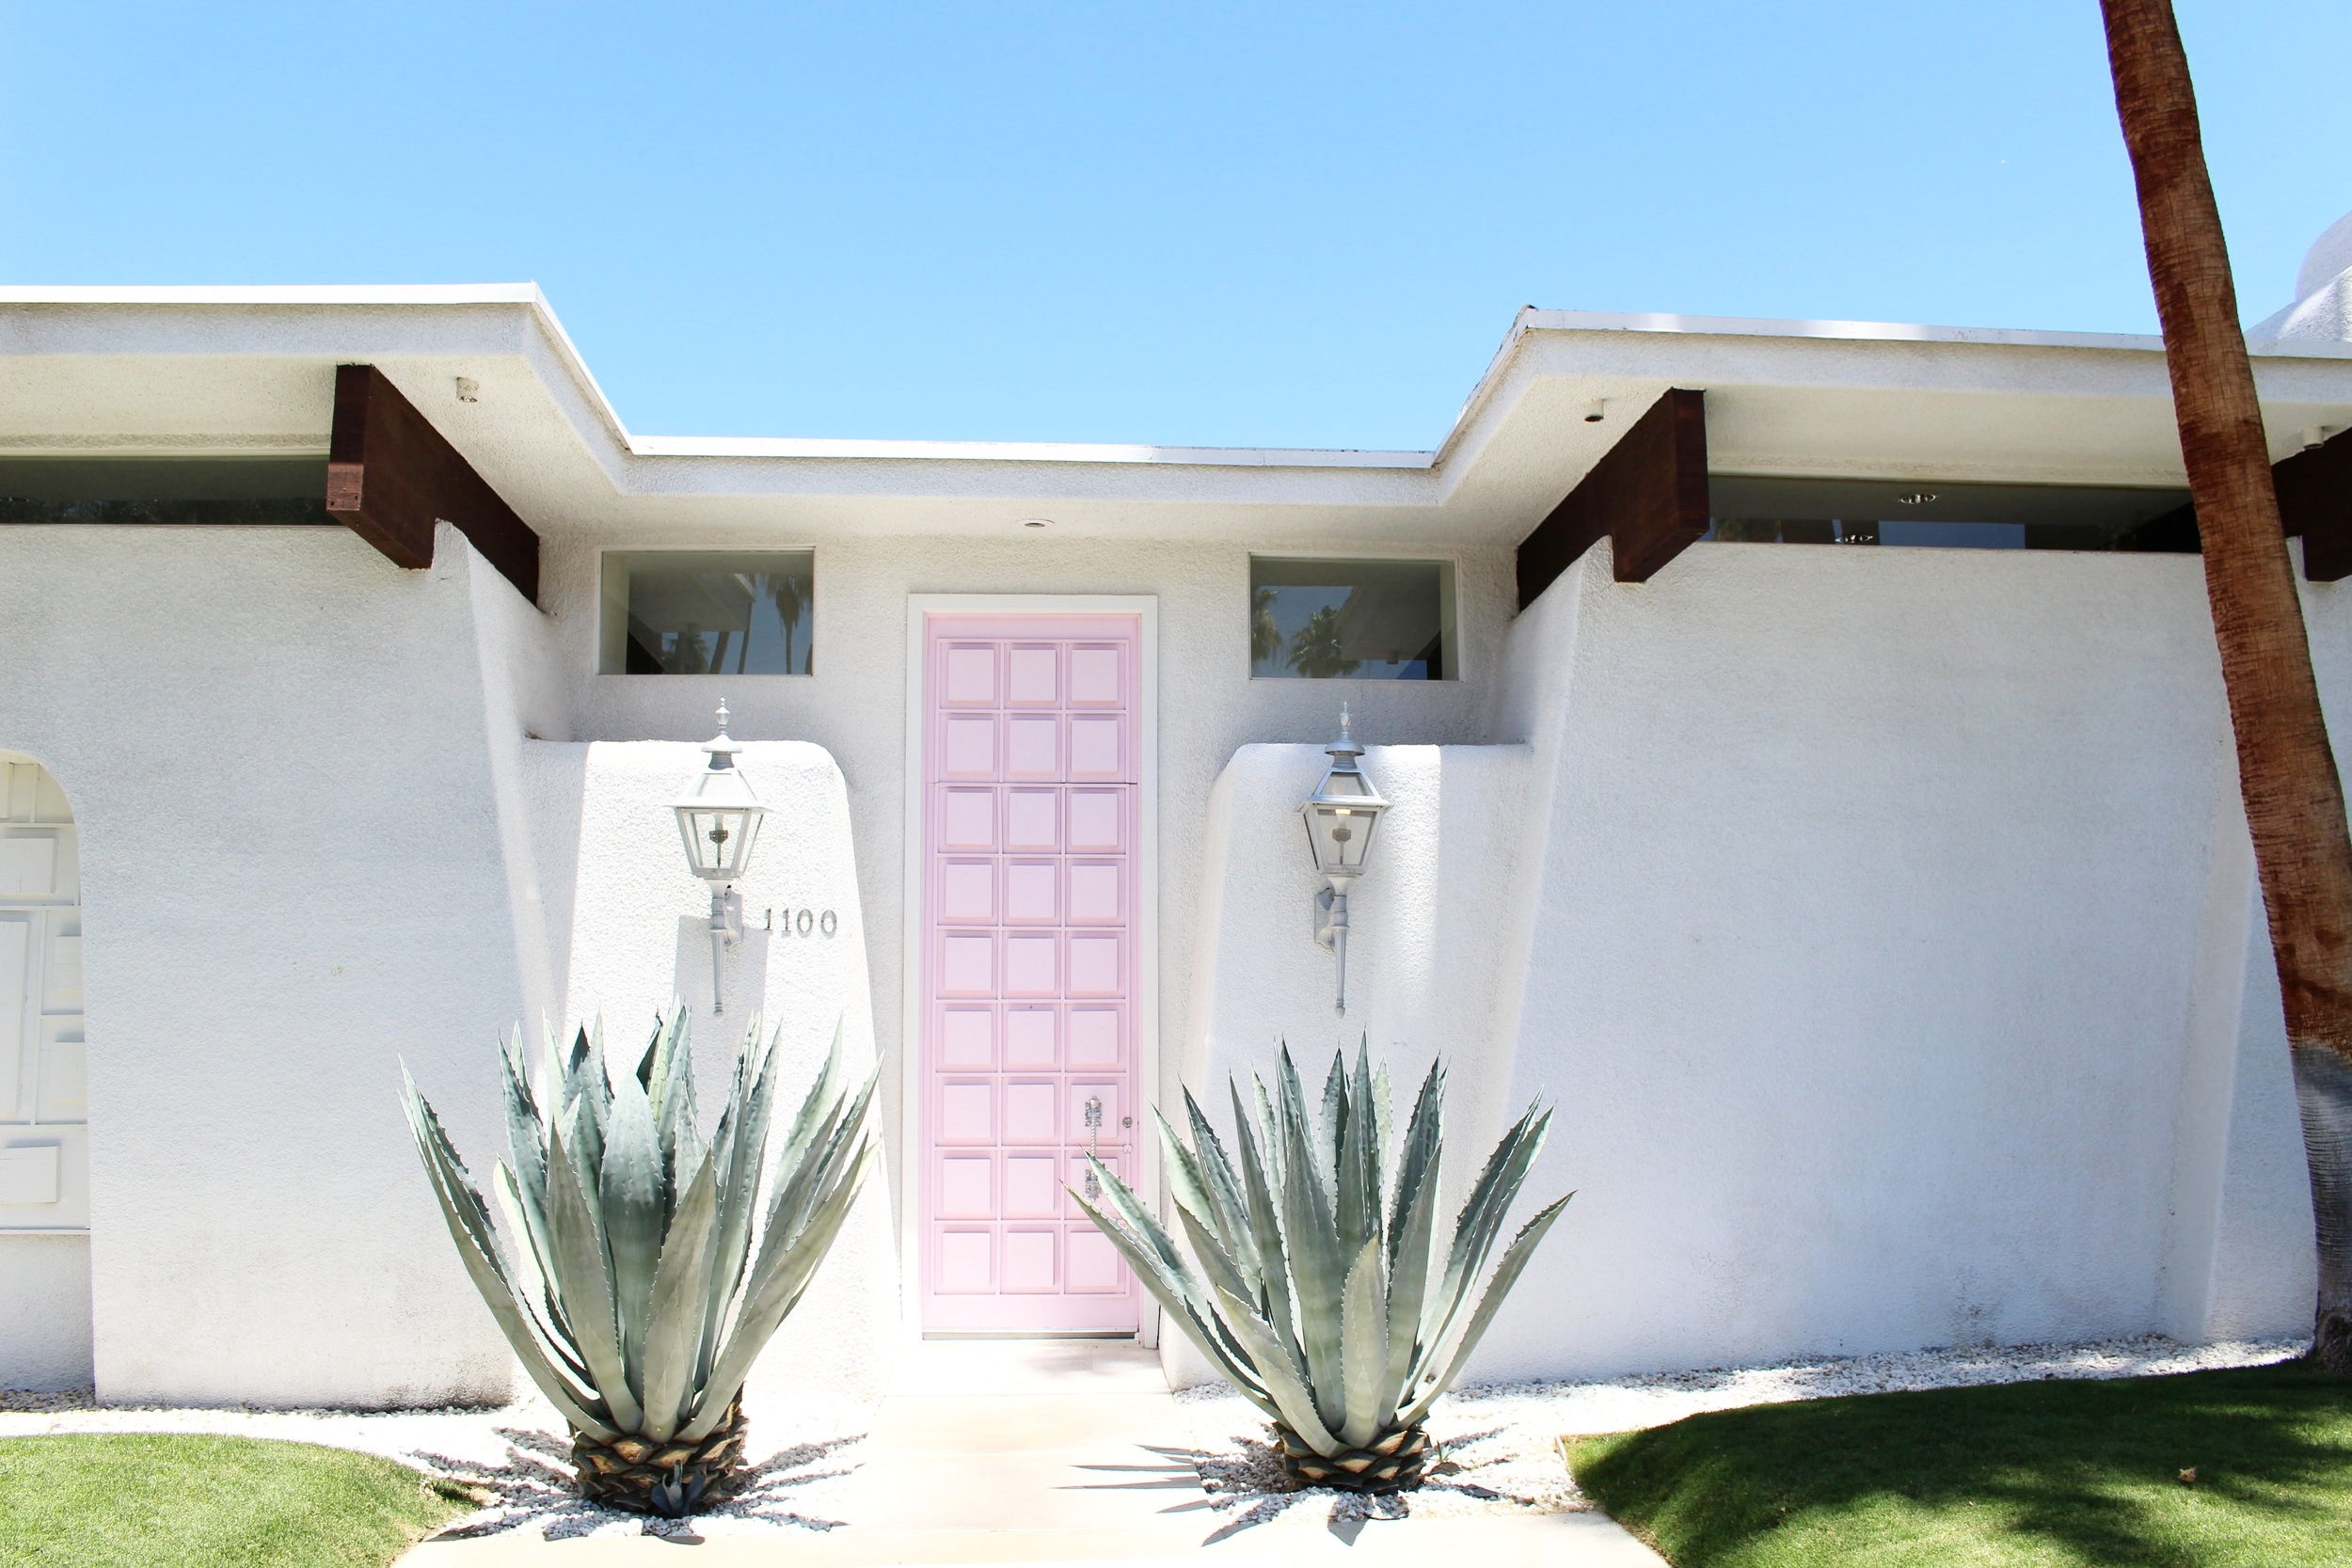 Search #thatpinkdoor on Instagram to see more photos of this house than you could ever want.